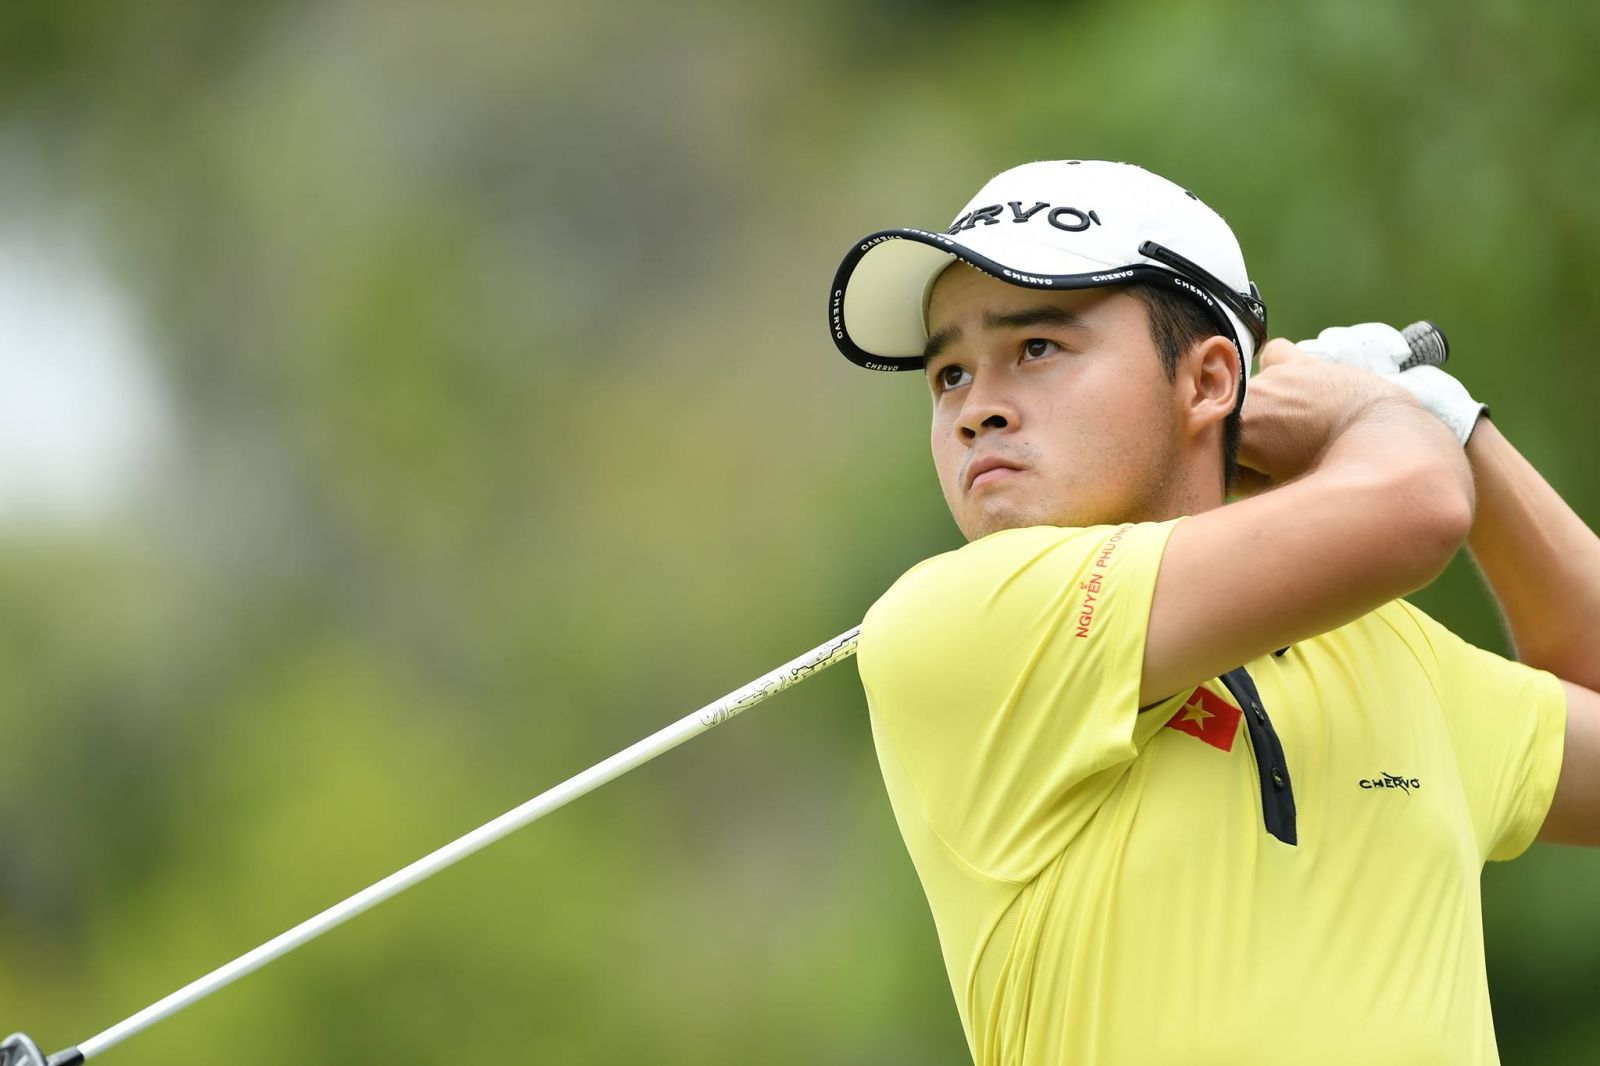 Nguyen Phuong Toan left a mark in Vietnamese golf history at SEA Games 29